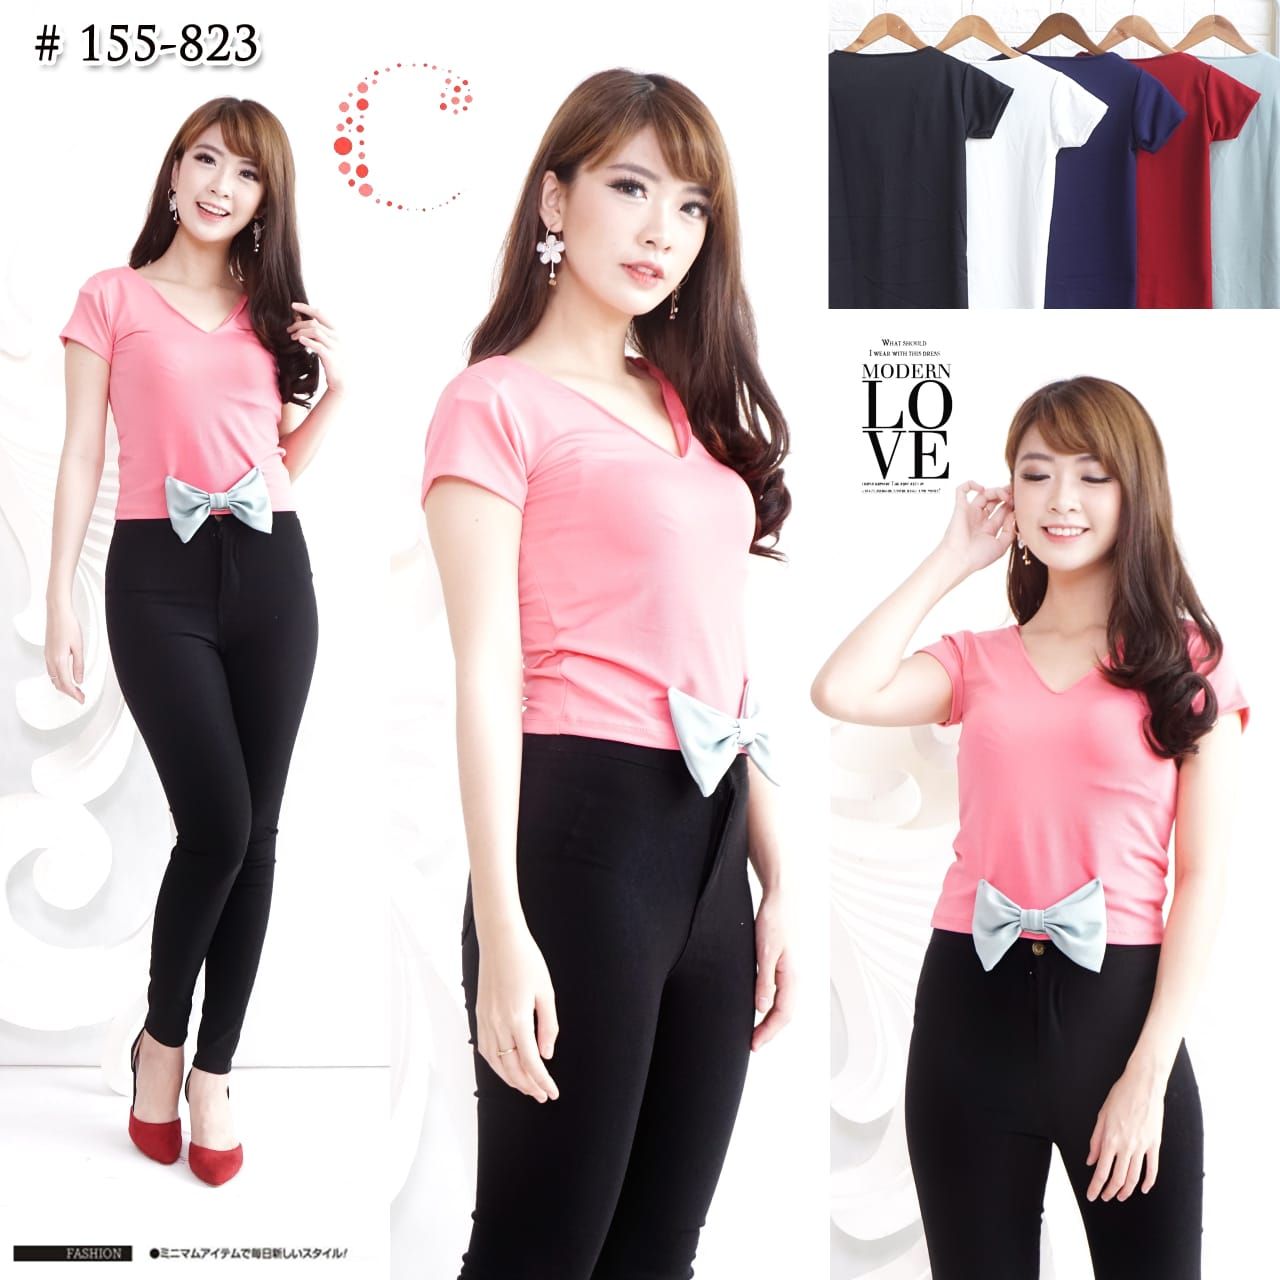 Bow tie crop tops 155-823